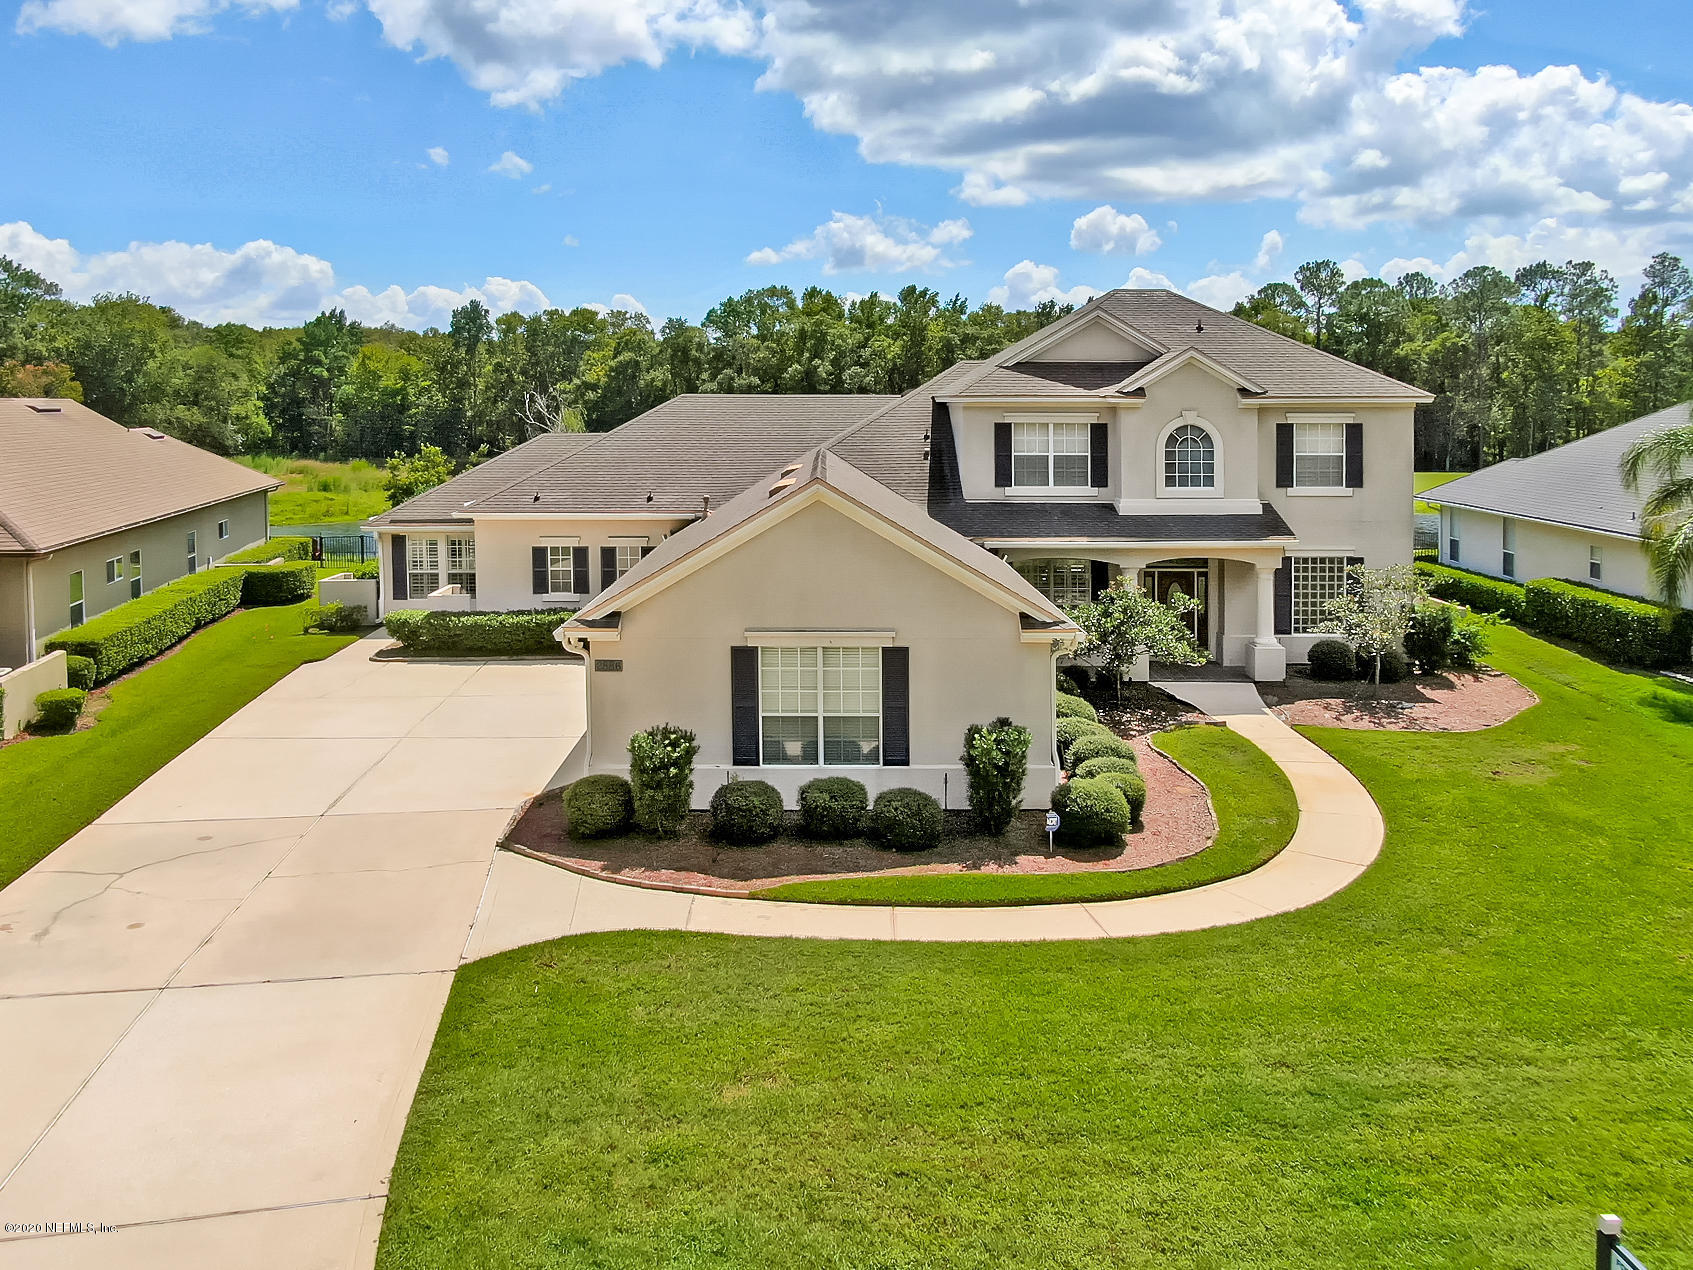 2886 COUNTRY CLUB, ORANGE PARK, FLORIDA 32073, 5 Bedrooms Bedrooms, ,3 BathroomsBathrooms,Residential,For sale,COUNTRY CLUB,1032791